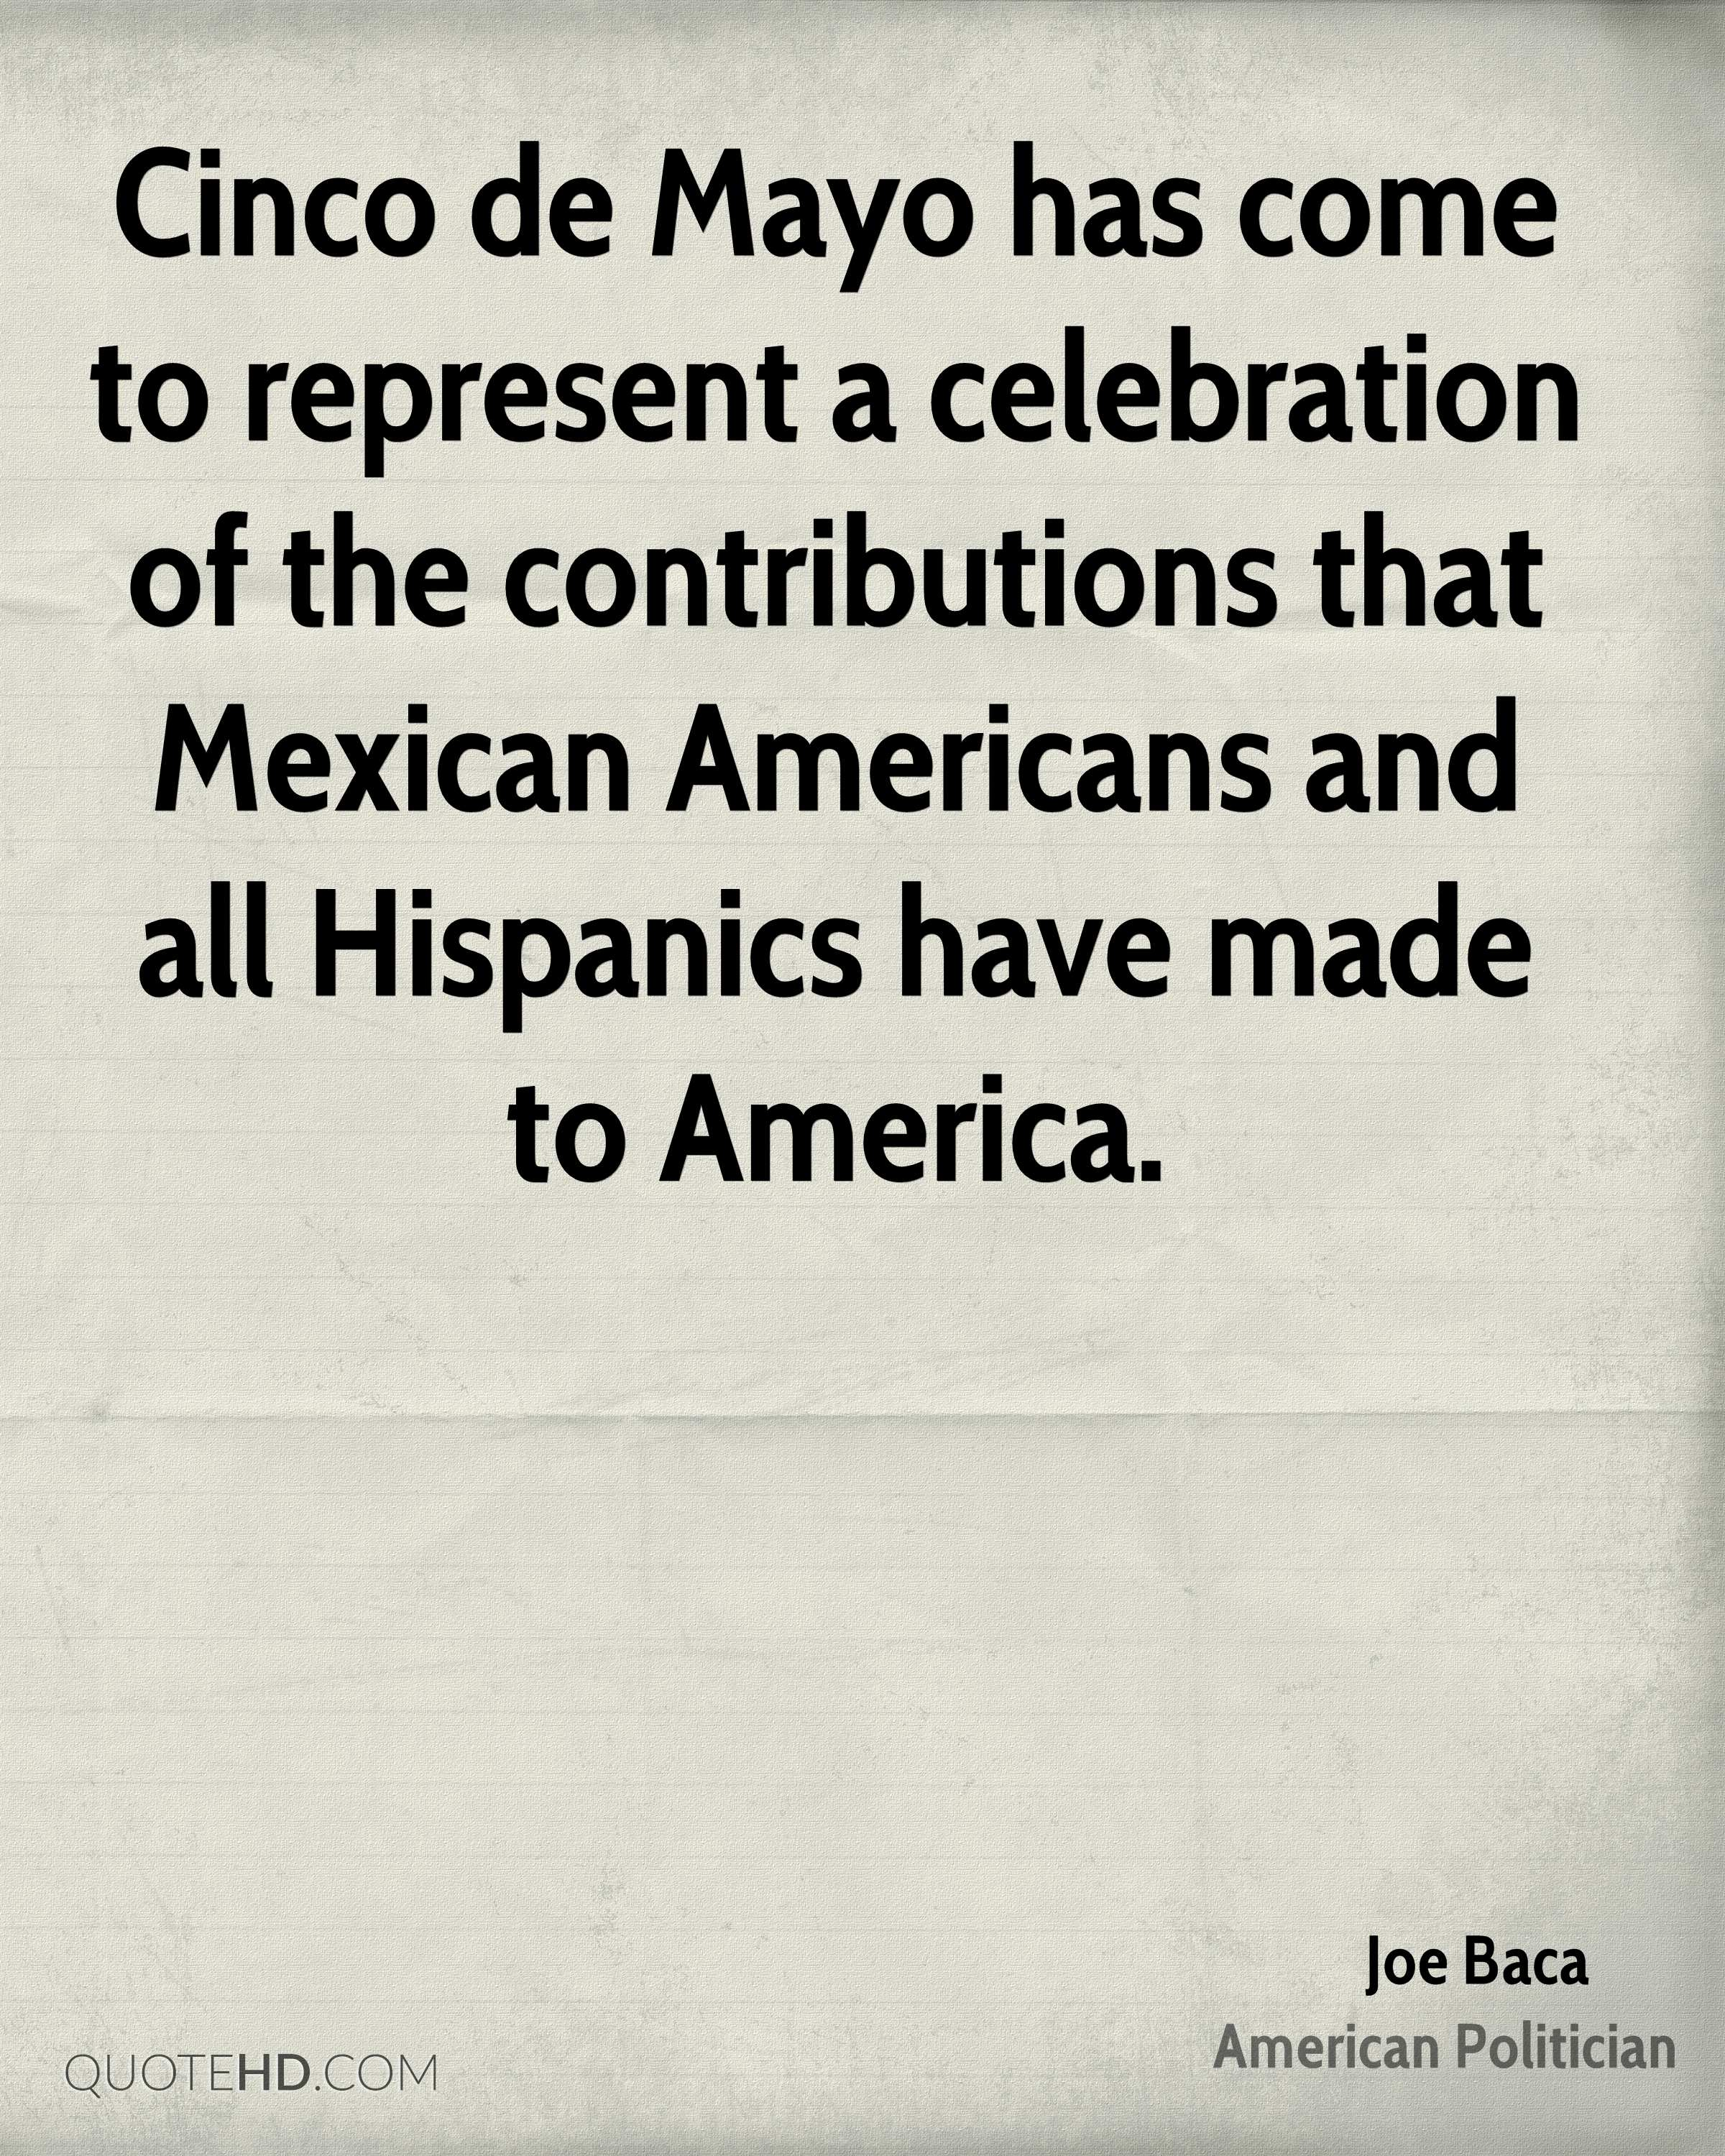 Cinco de Mayo has come to represent a celebration of the contributions that Mexican Americans and all Hispanics have made to America.